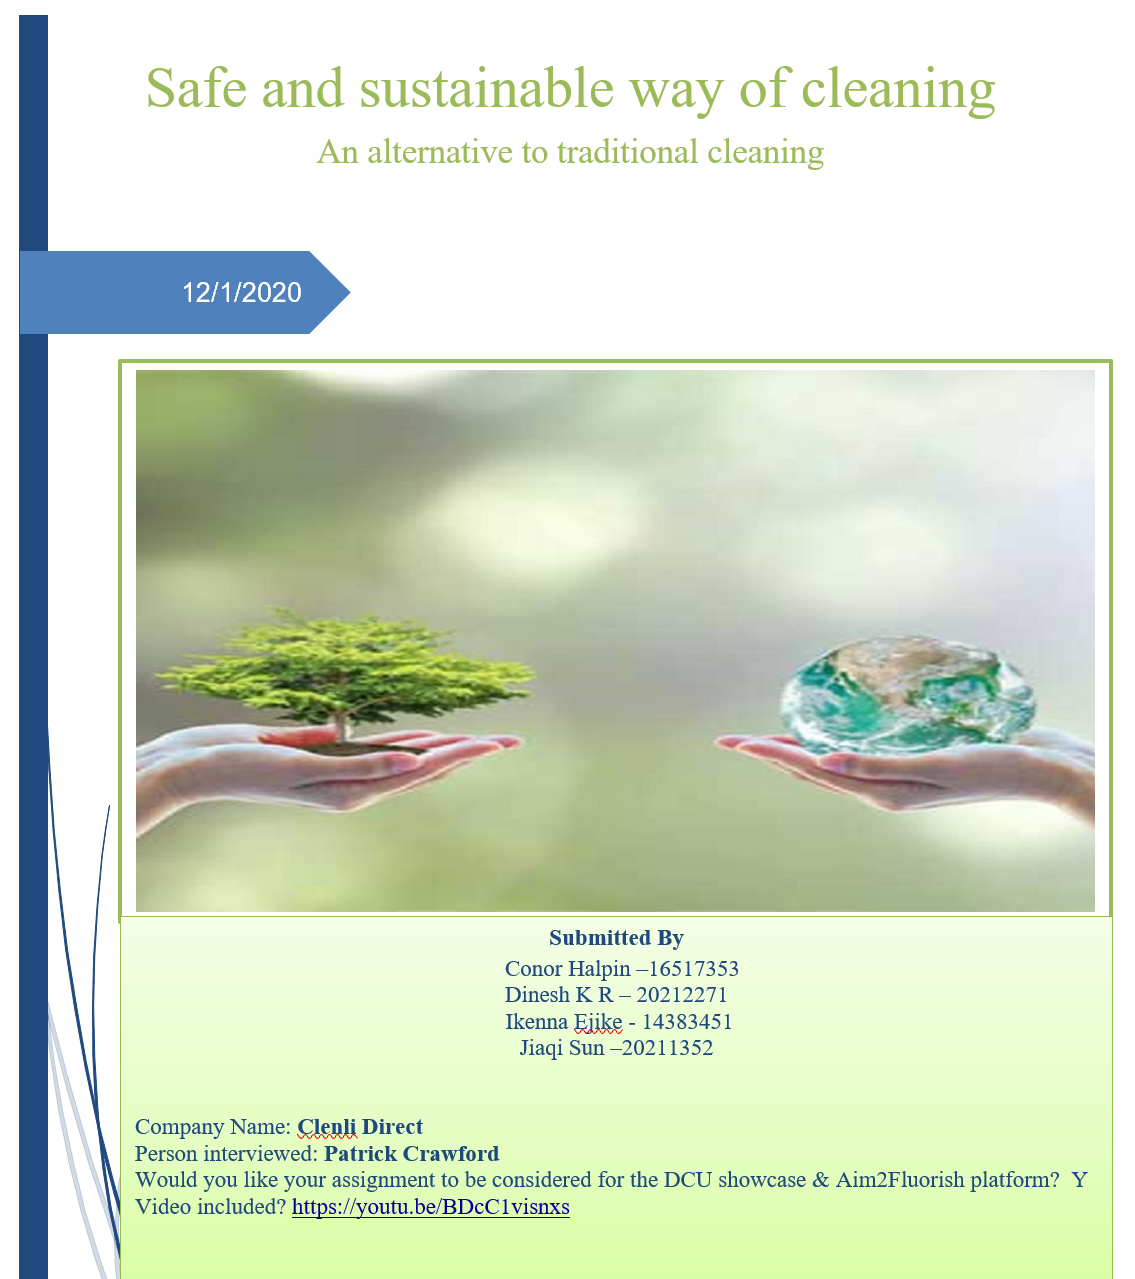 A safe and sustainable way of cleaning